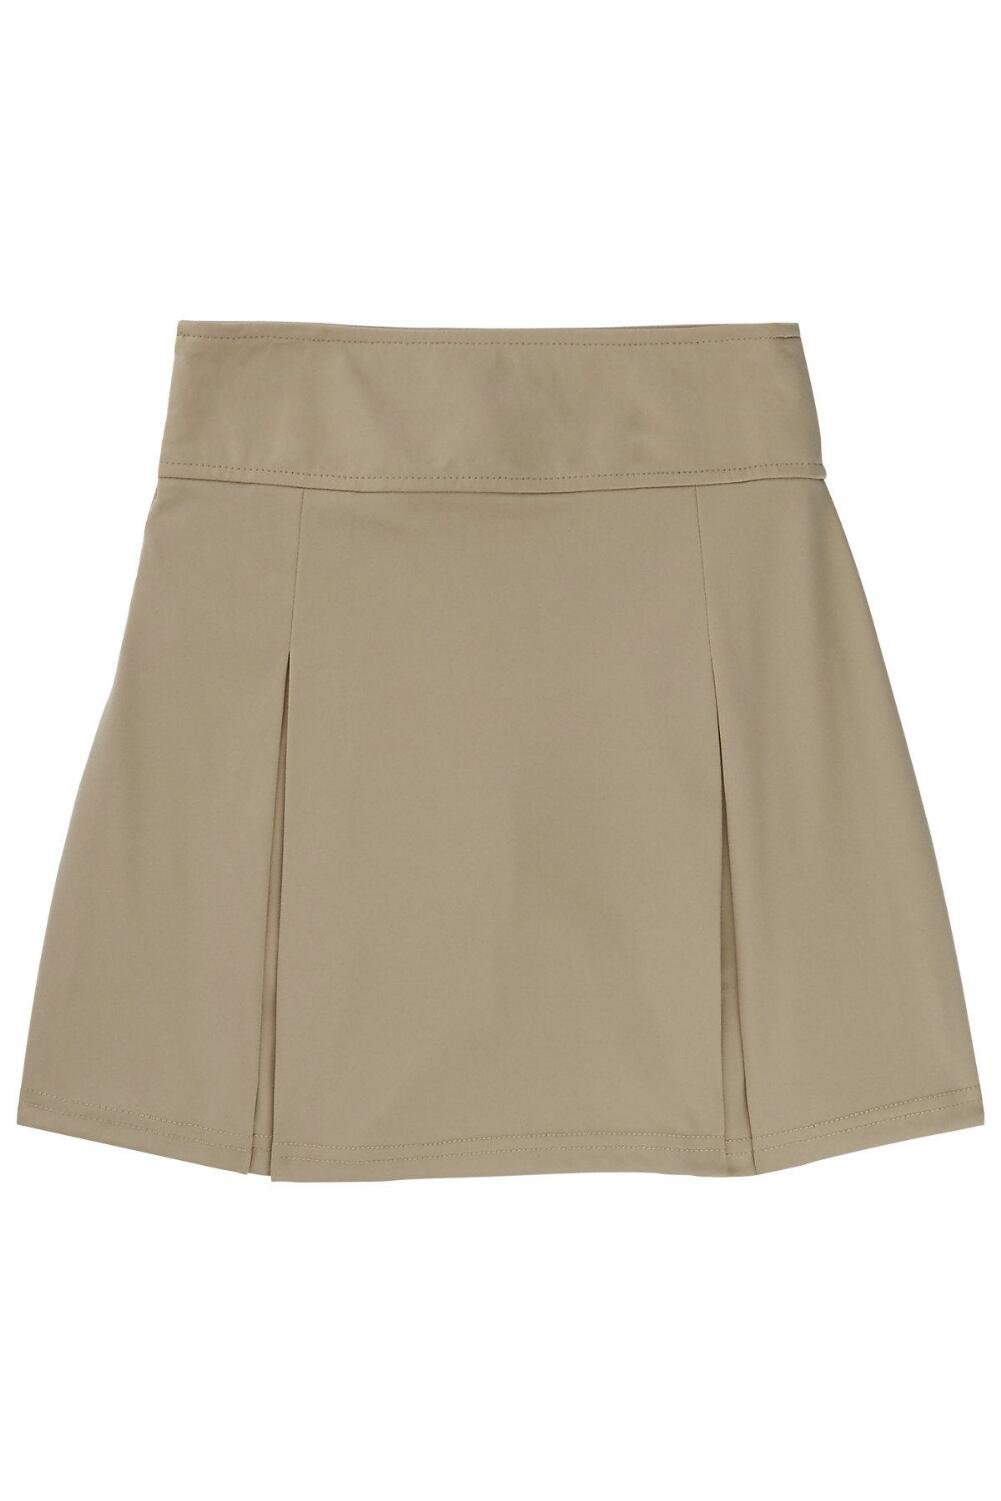 French Toast Big Girls' Pull-on Kick Pleat Scooter, Khaki, L (10/12)